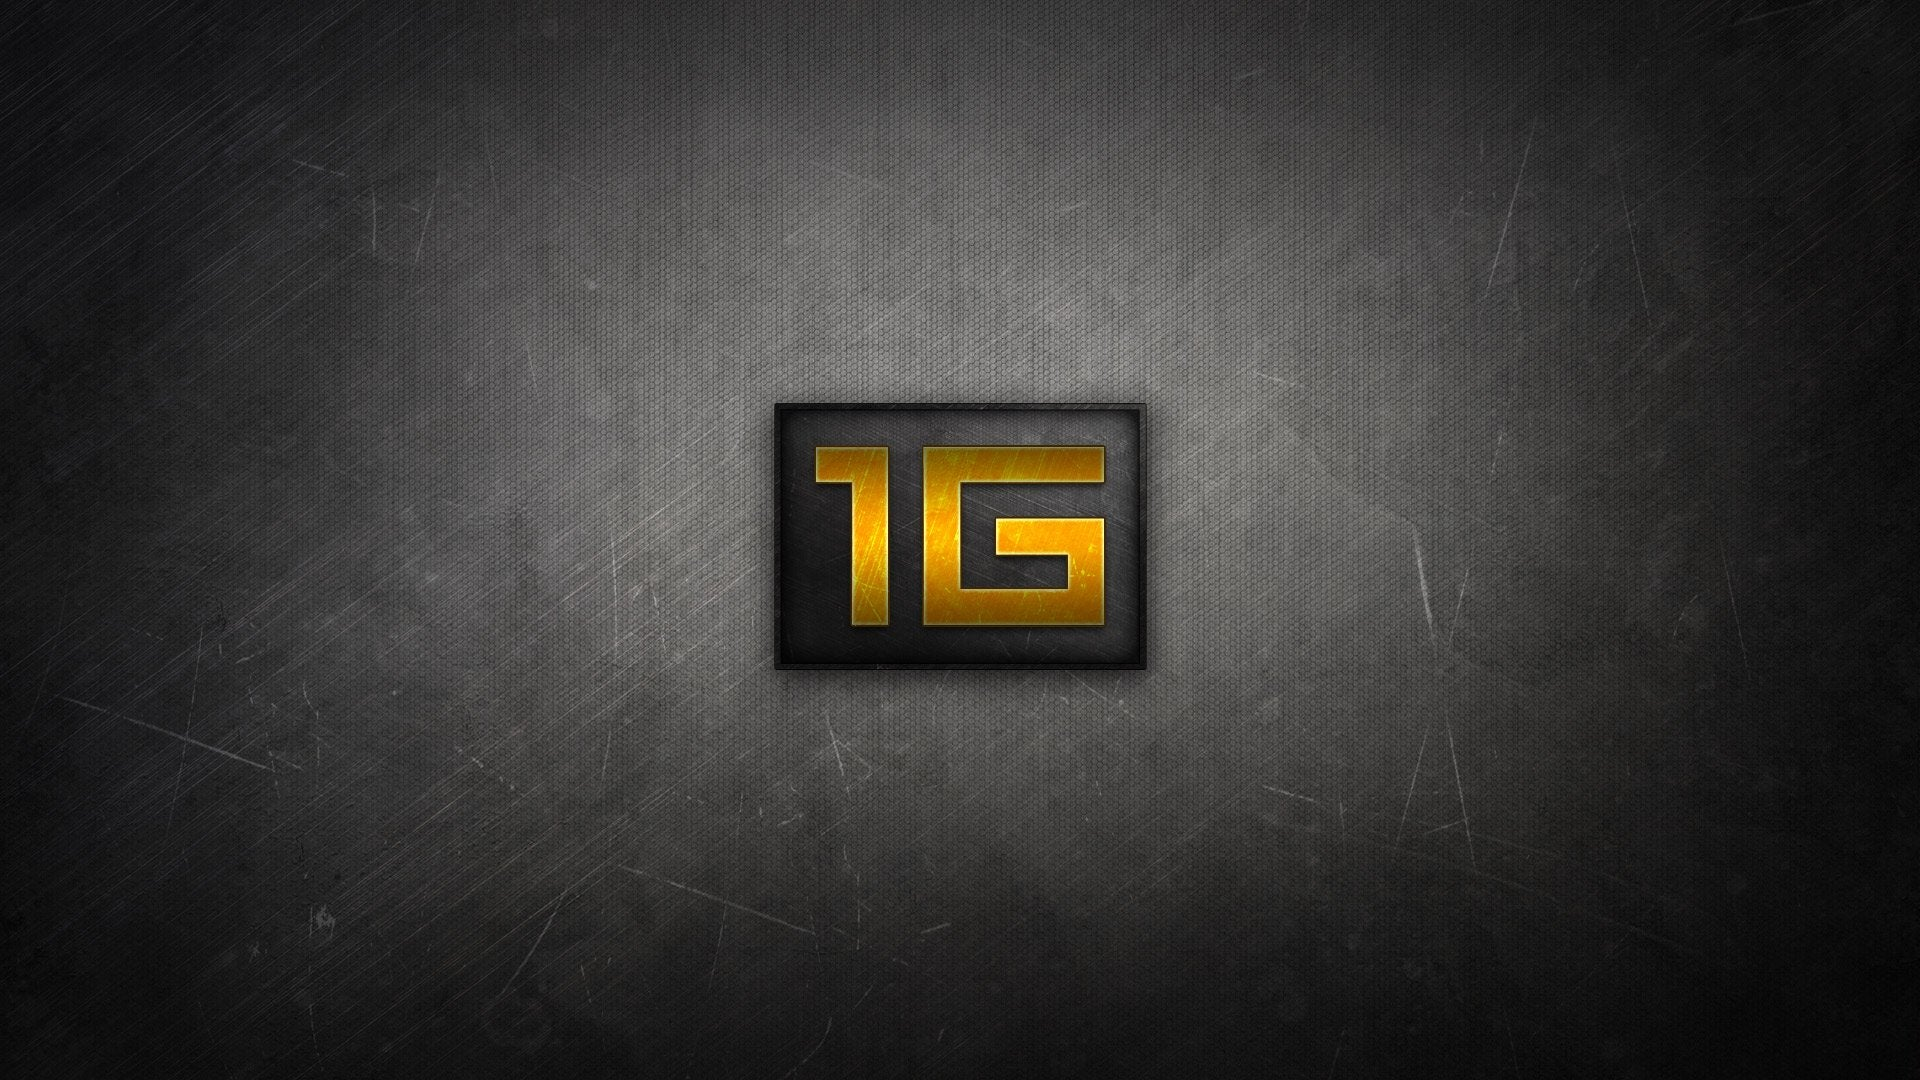 Want a 1G logo has a wallpaper? Check it out, right click on.